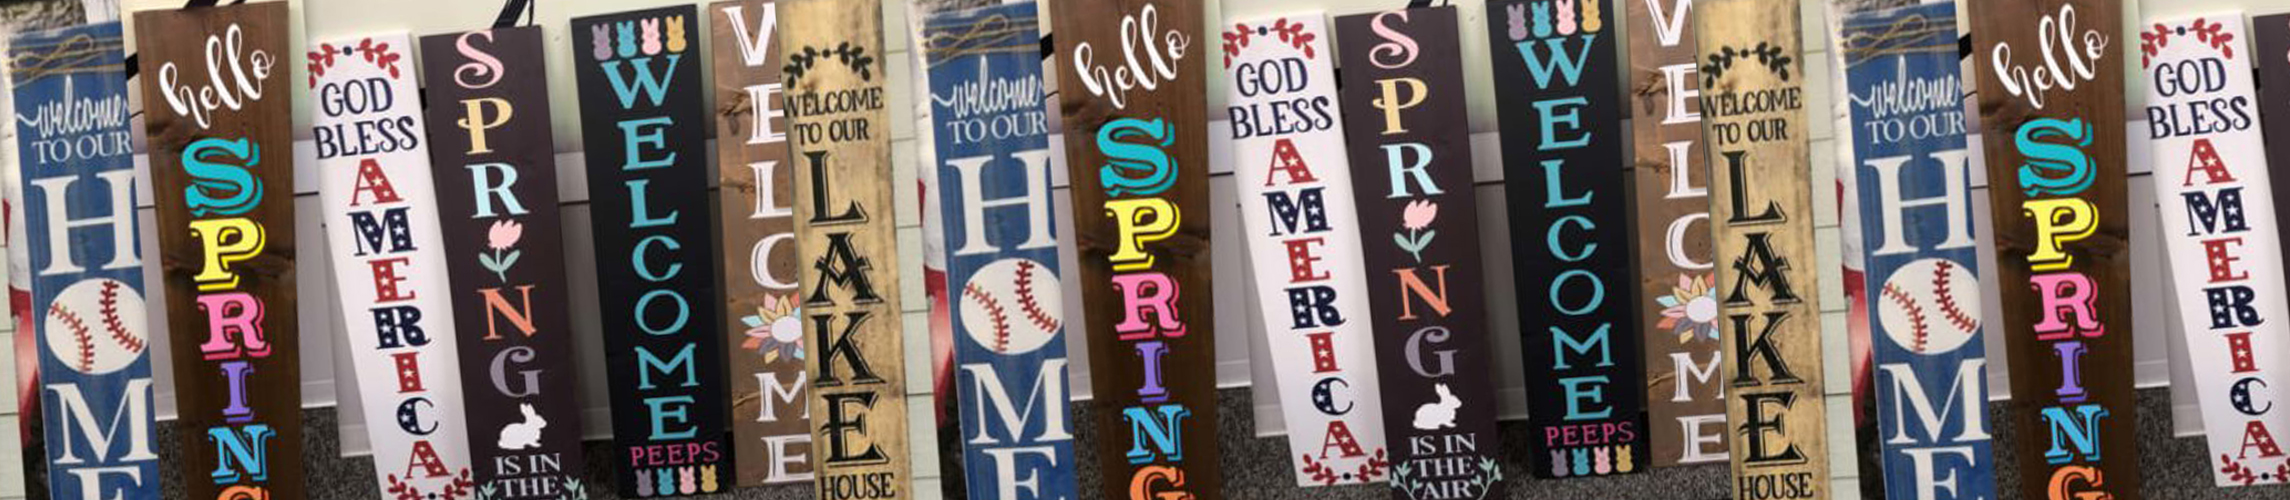 Spring Porch Sign Examples